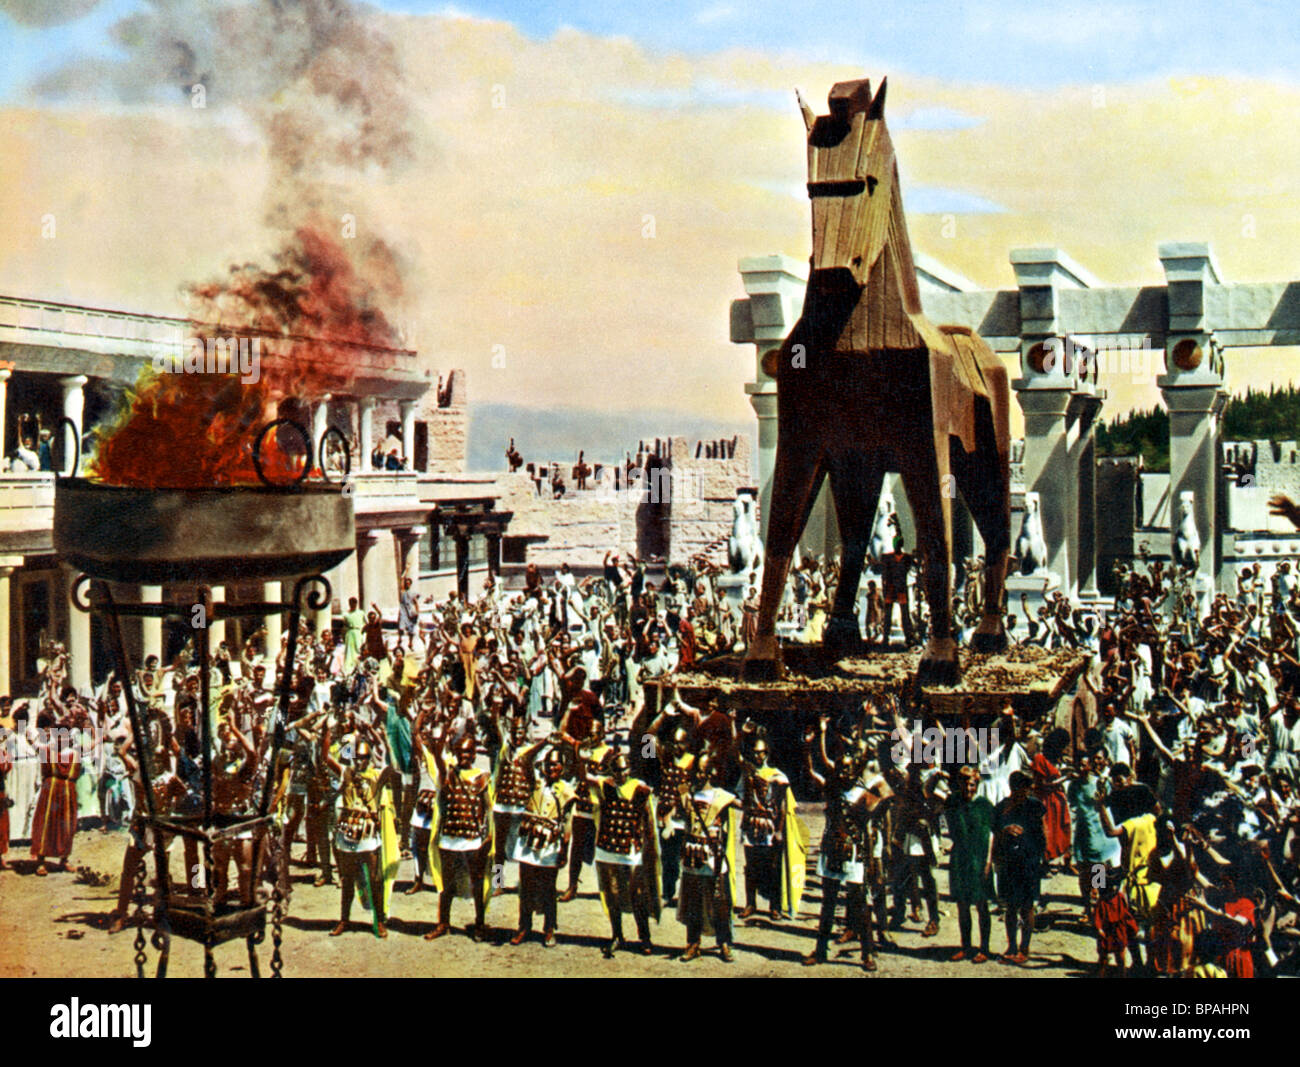 The Fall Of Troy Wallpaper Trojan Horse The Wooden Horse Of Troy The Trojan Horse